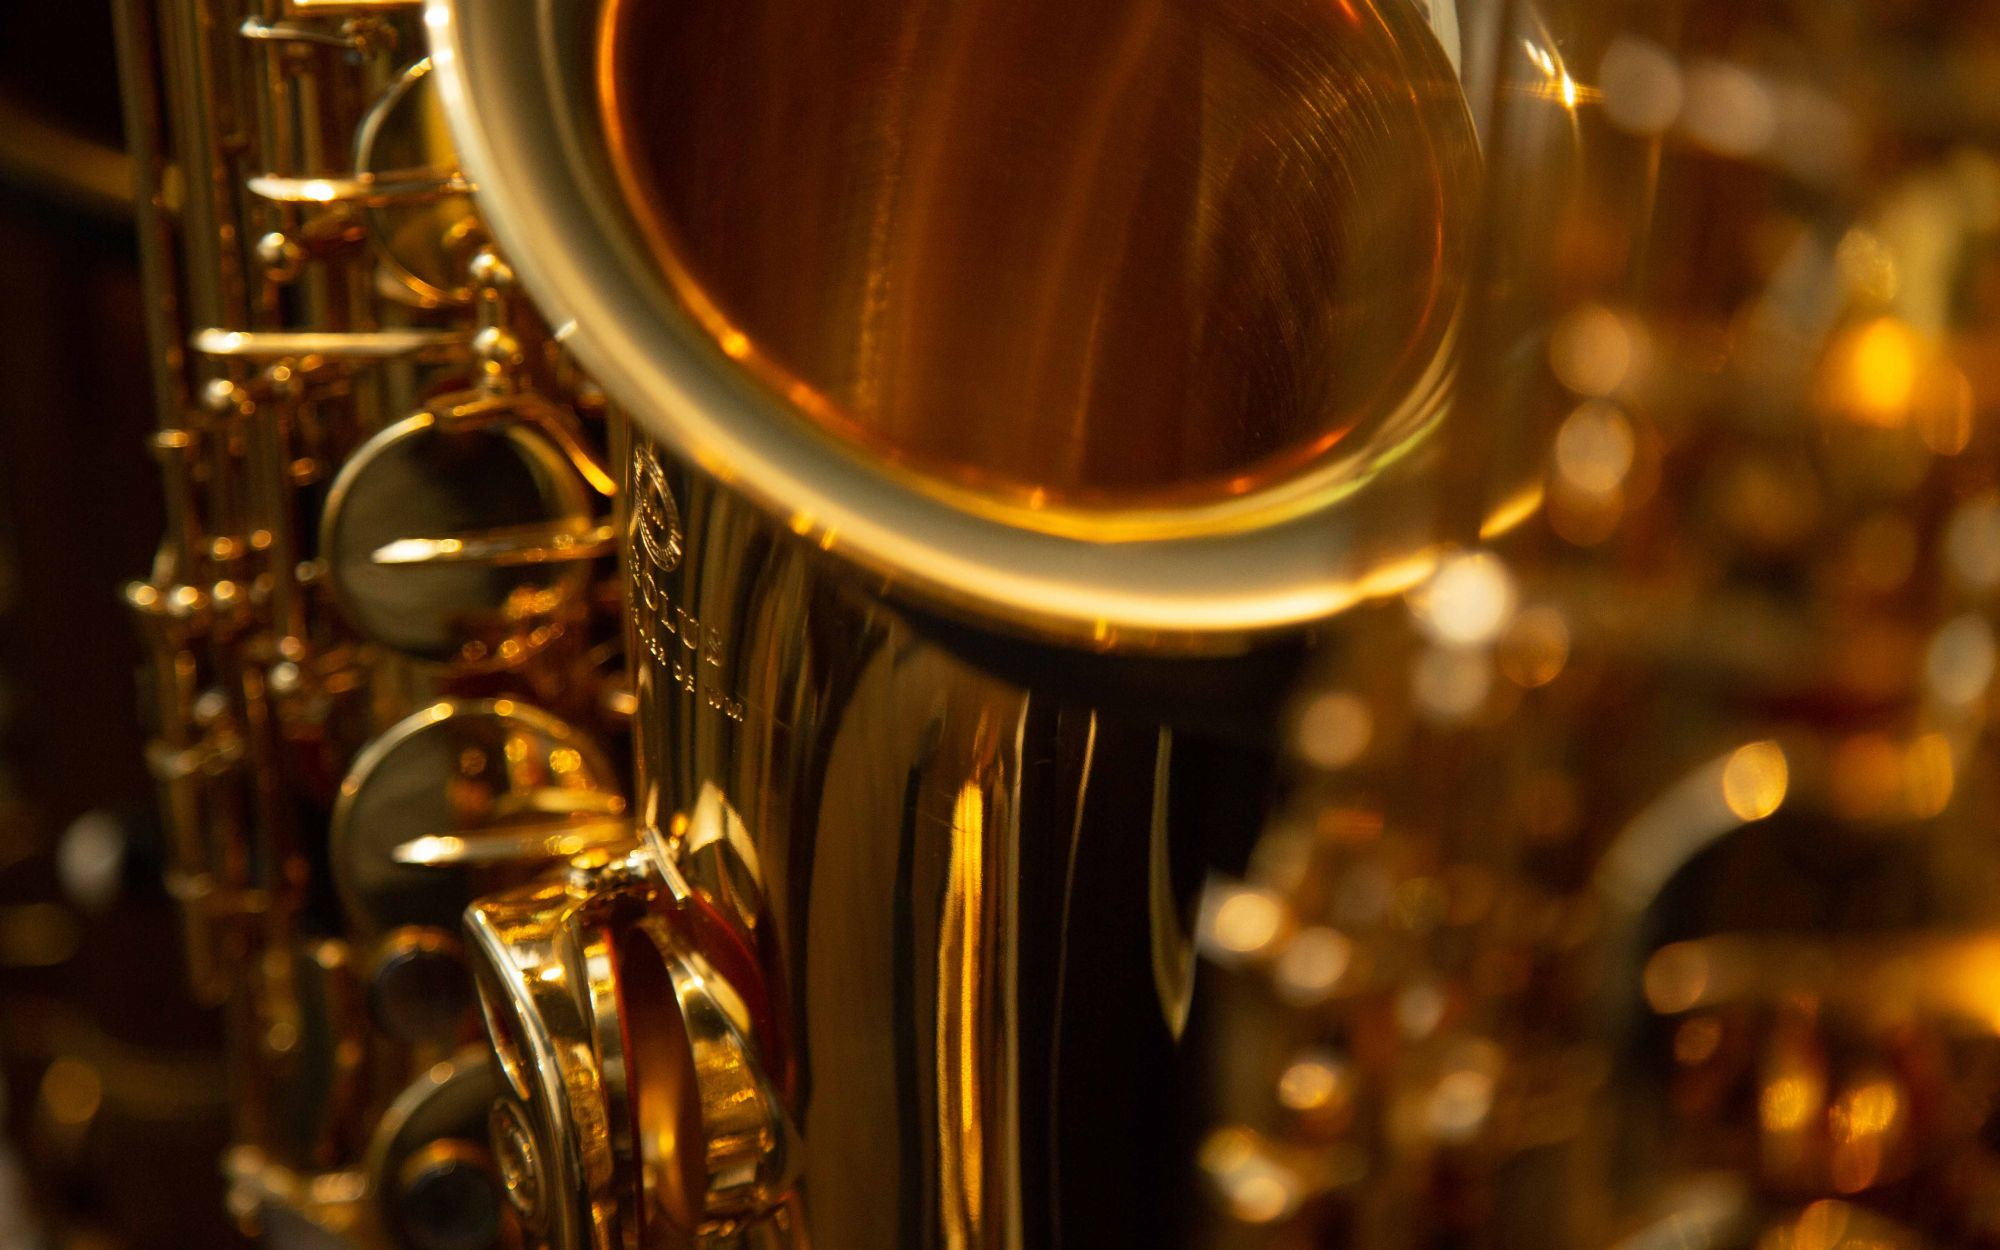 Why The Saxophone Is Increasing In Popularity In The Klang Valley